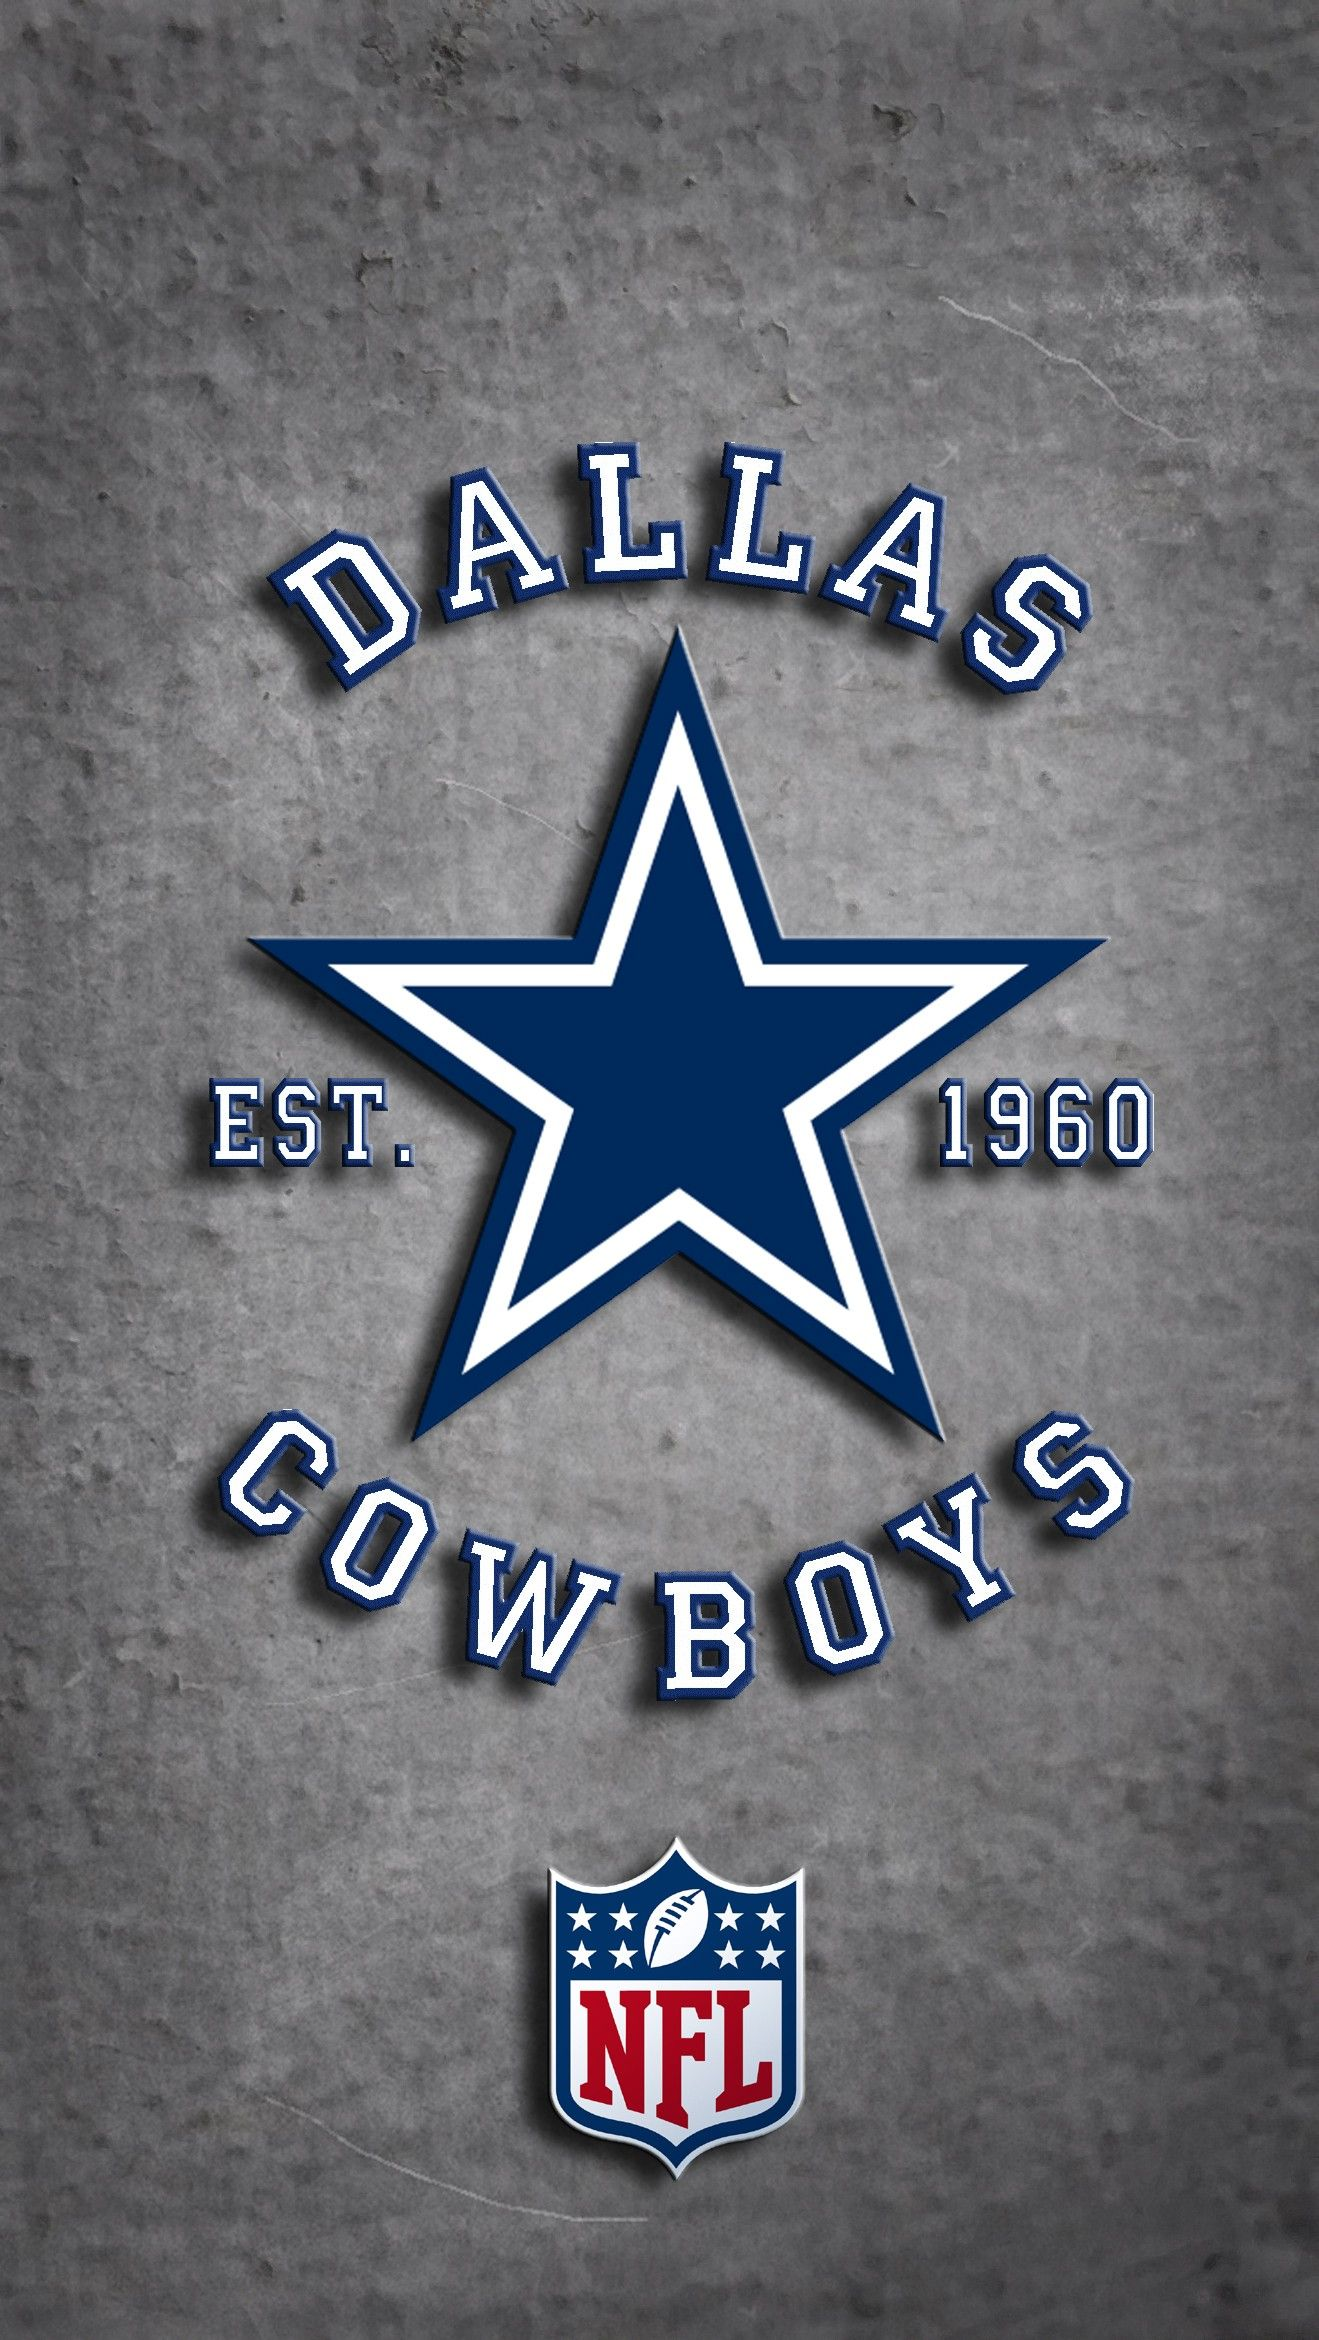 Pin by Deb on Dallas cowboys (With images) Dallas